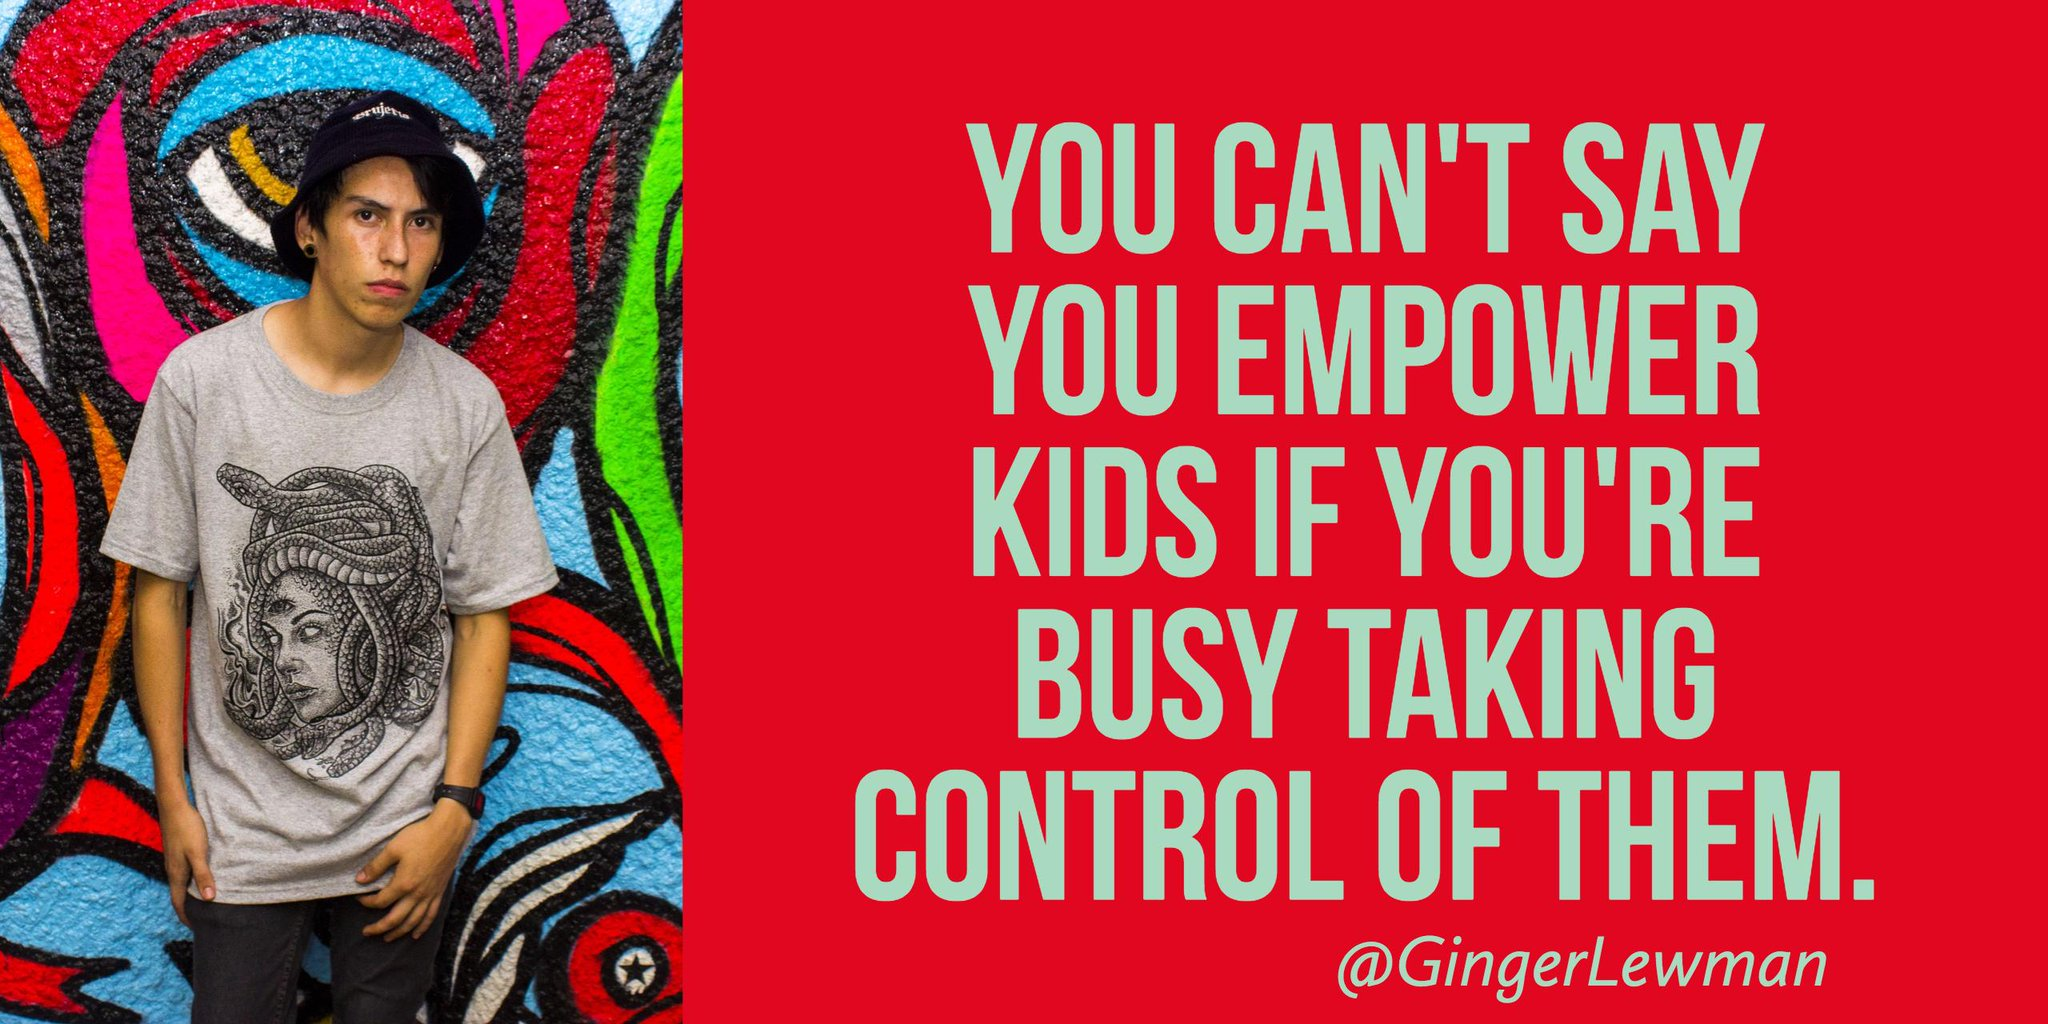 You Can't Say You Empower When You're Taking Control